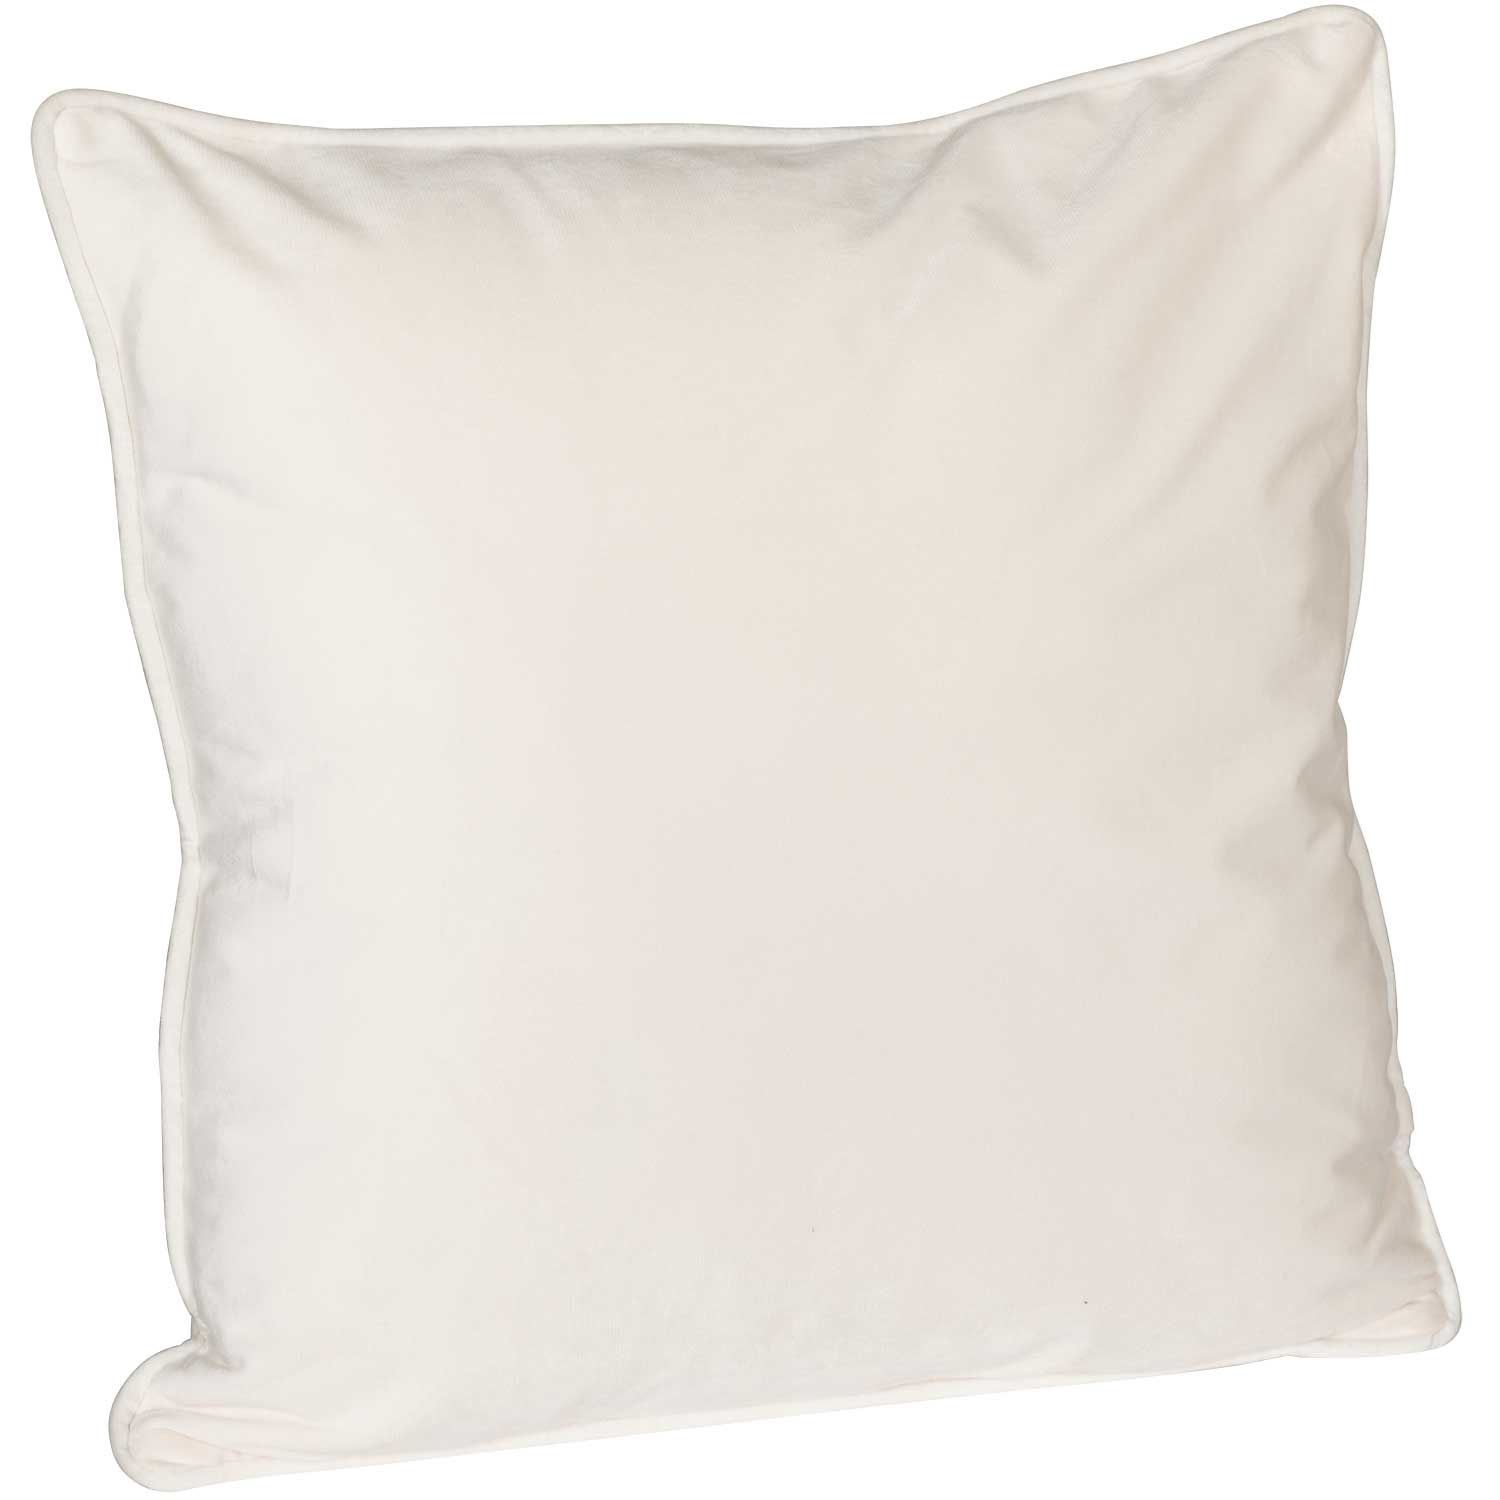 Picture of 18X18 Cream Velvet Decorative Pillow